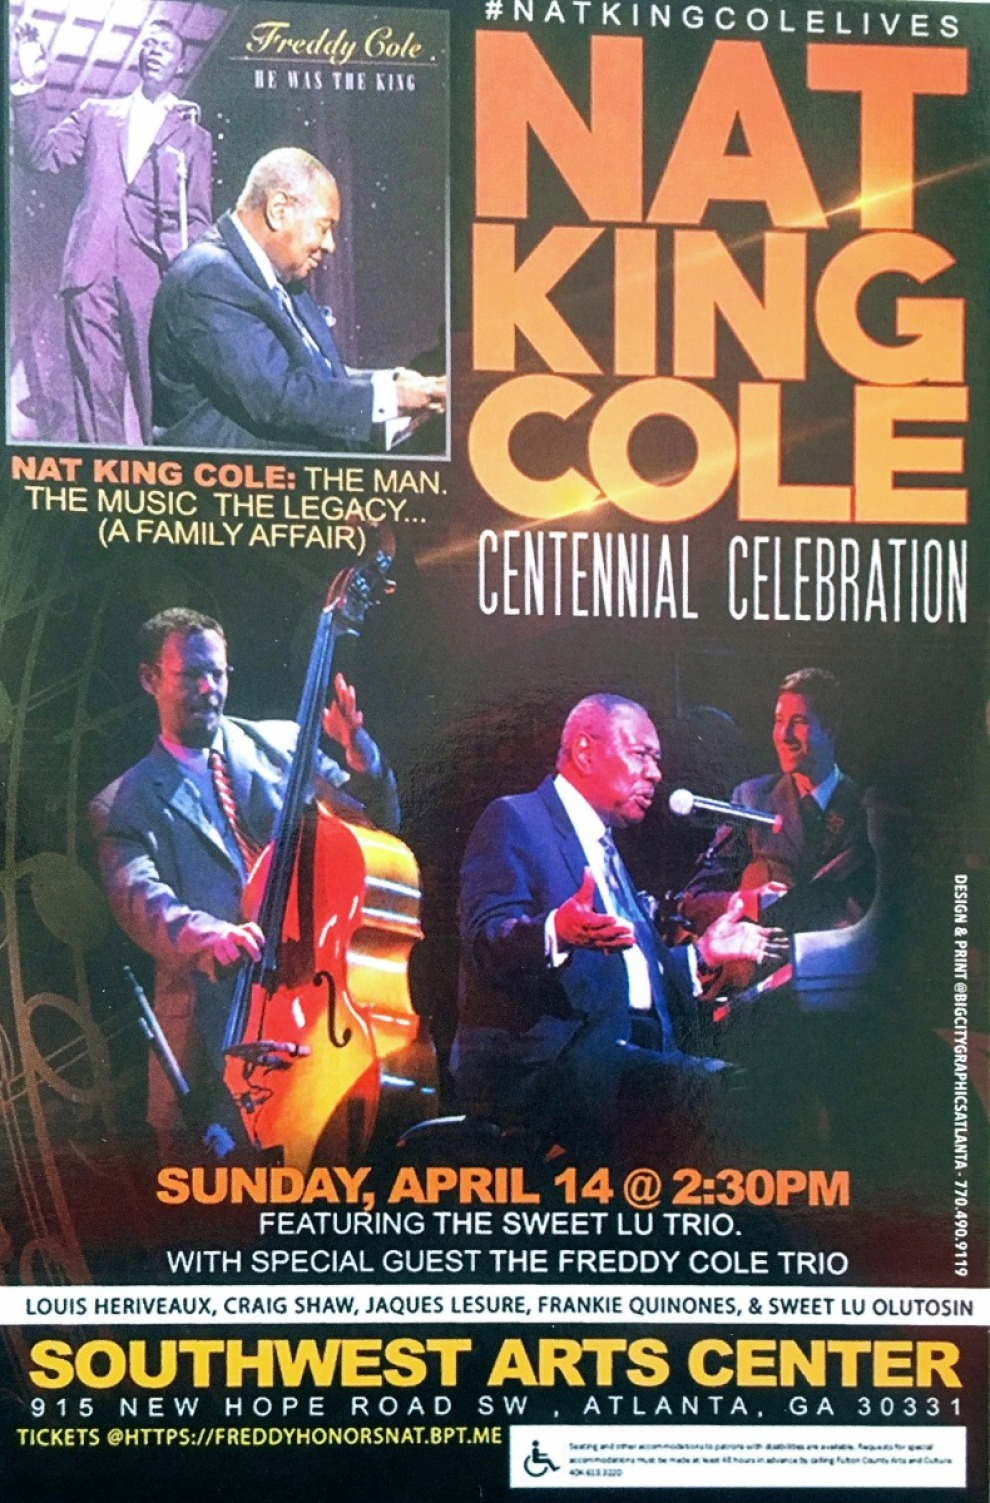 NAT KING COLE CENTENNIAL CELEBRATION – FEATURING FREDDY COLE' On April 14th